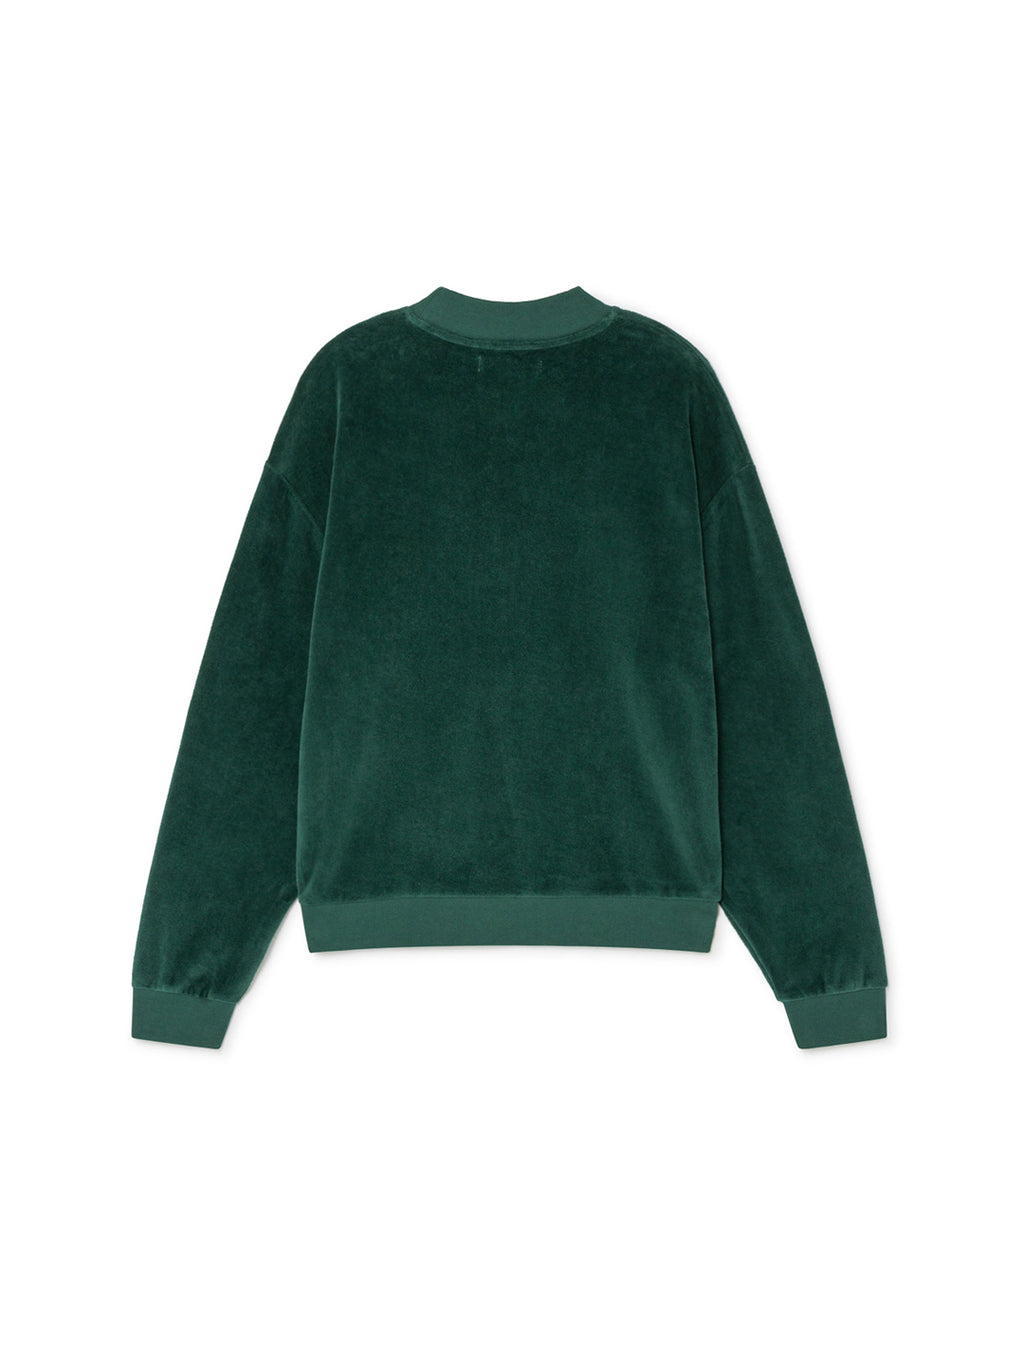 TWOTHIRDS Sweat: Kerguelen - Trekking Green